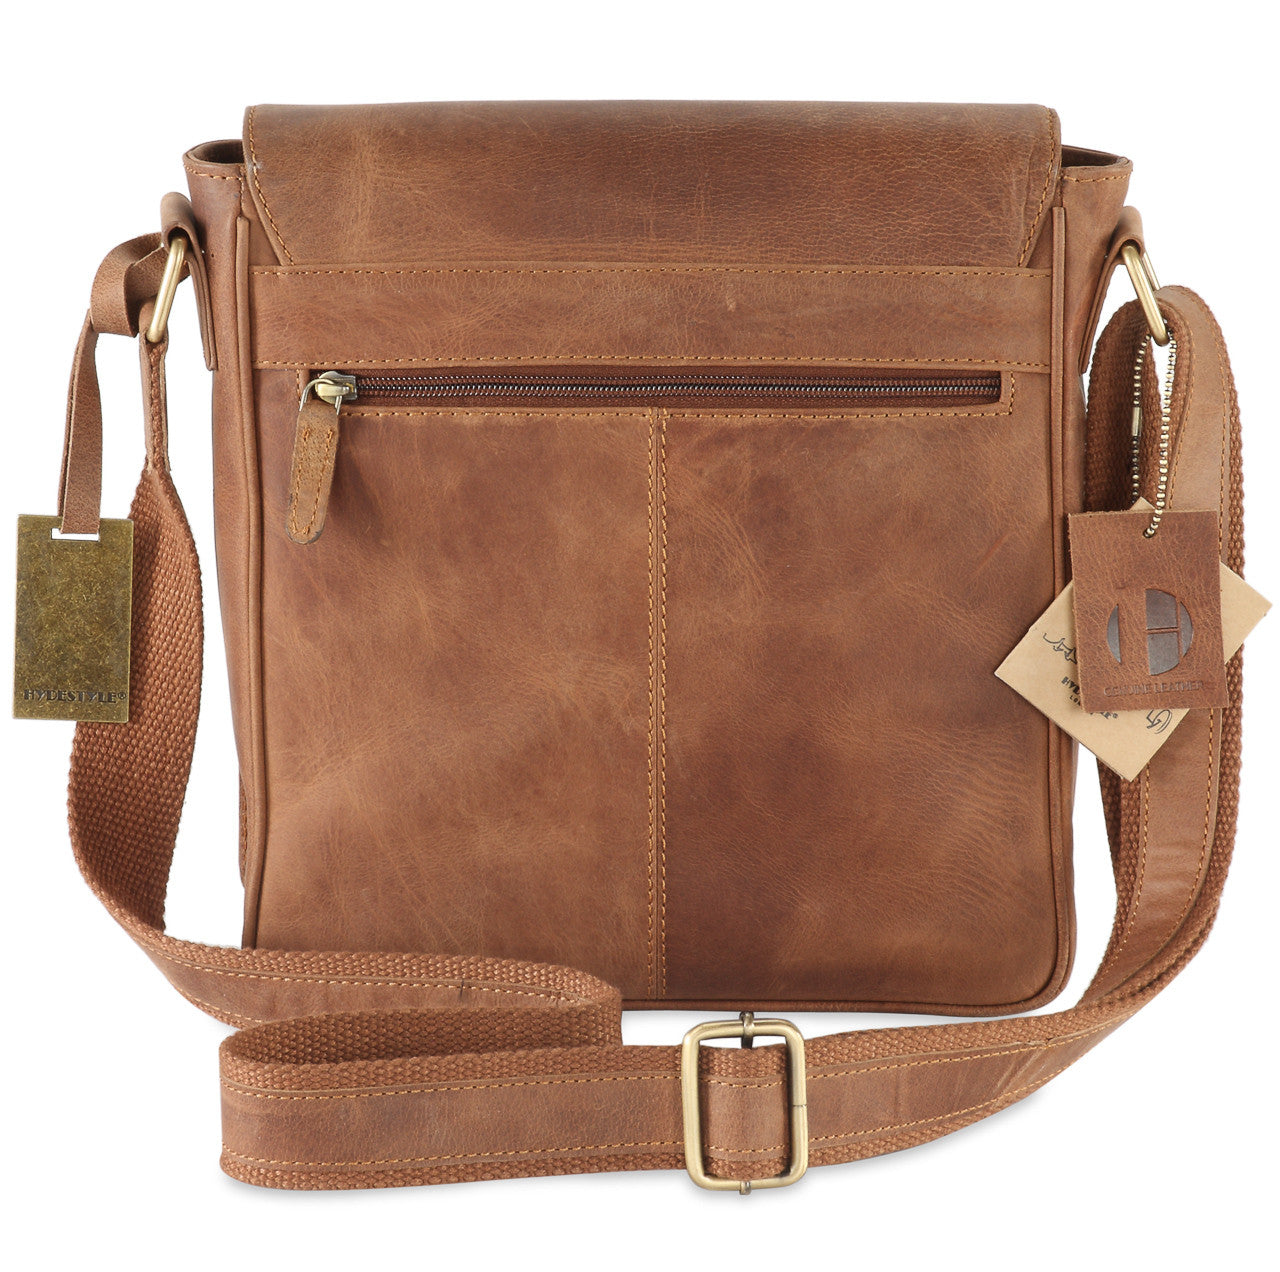 169cd8219a269 Frango hunter leather A4 messenger bag  UM49